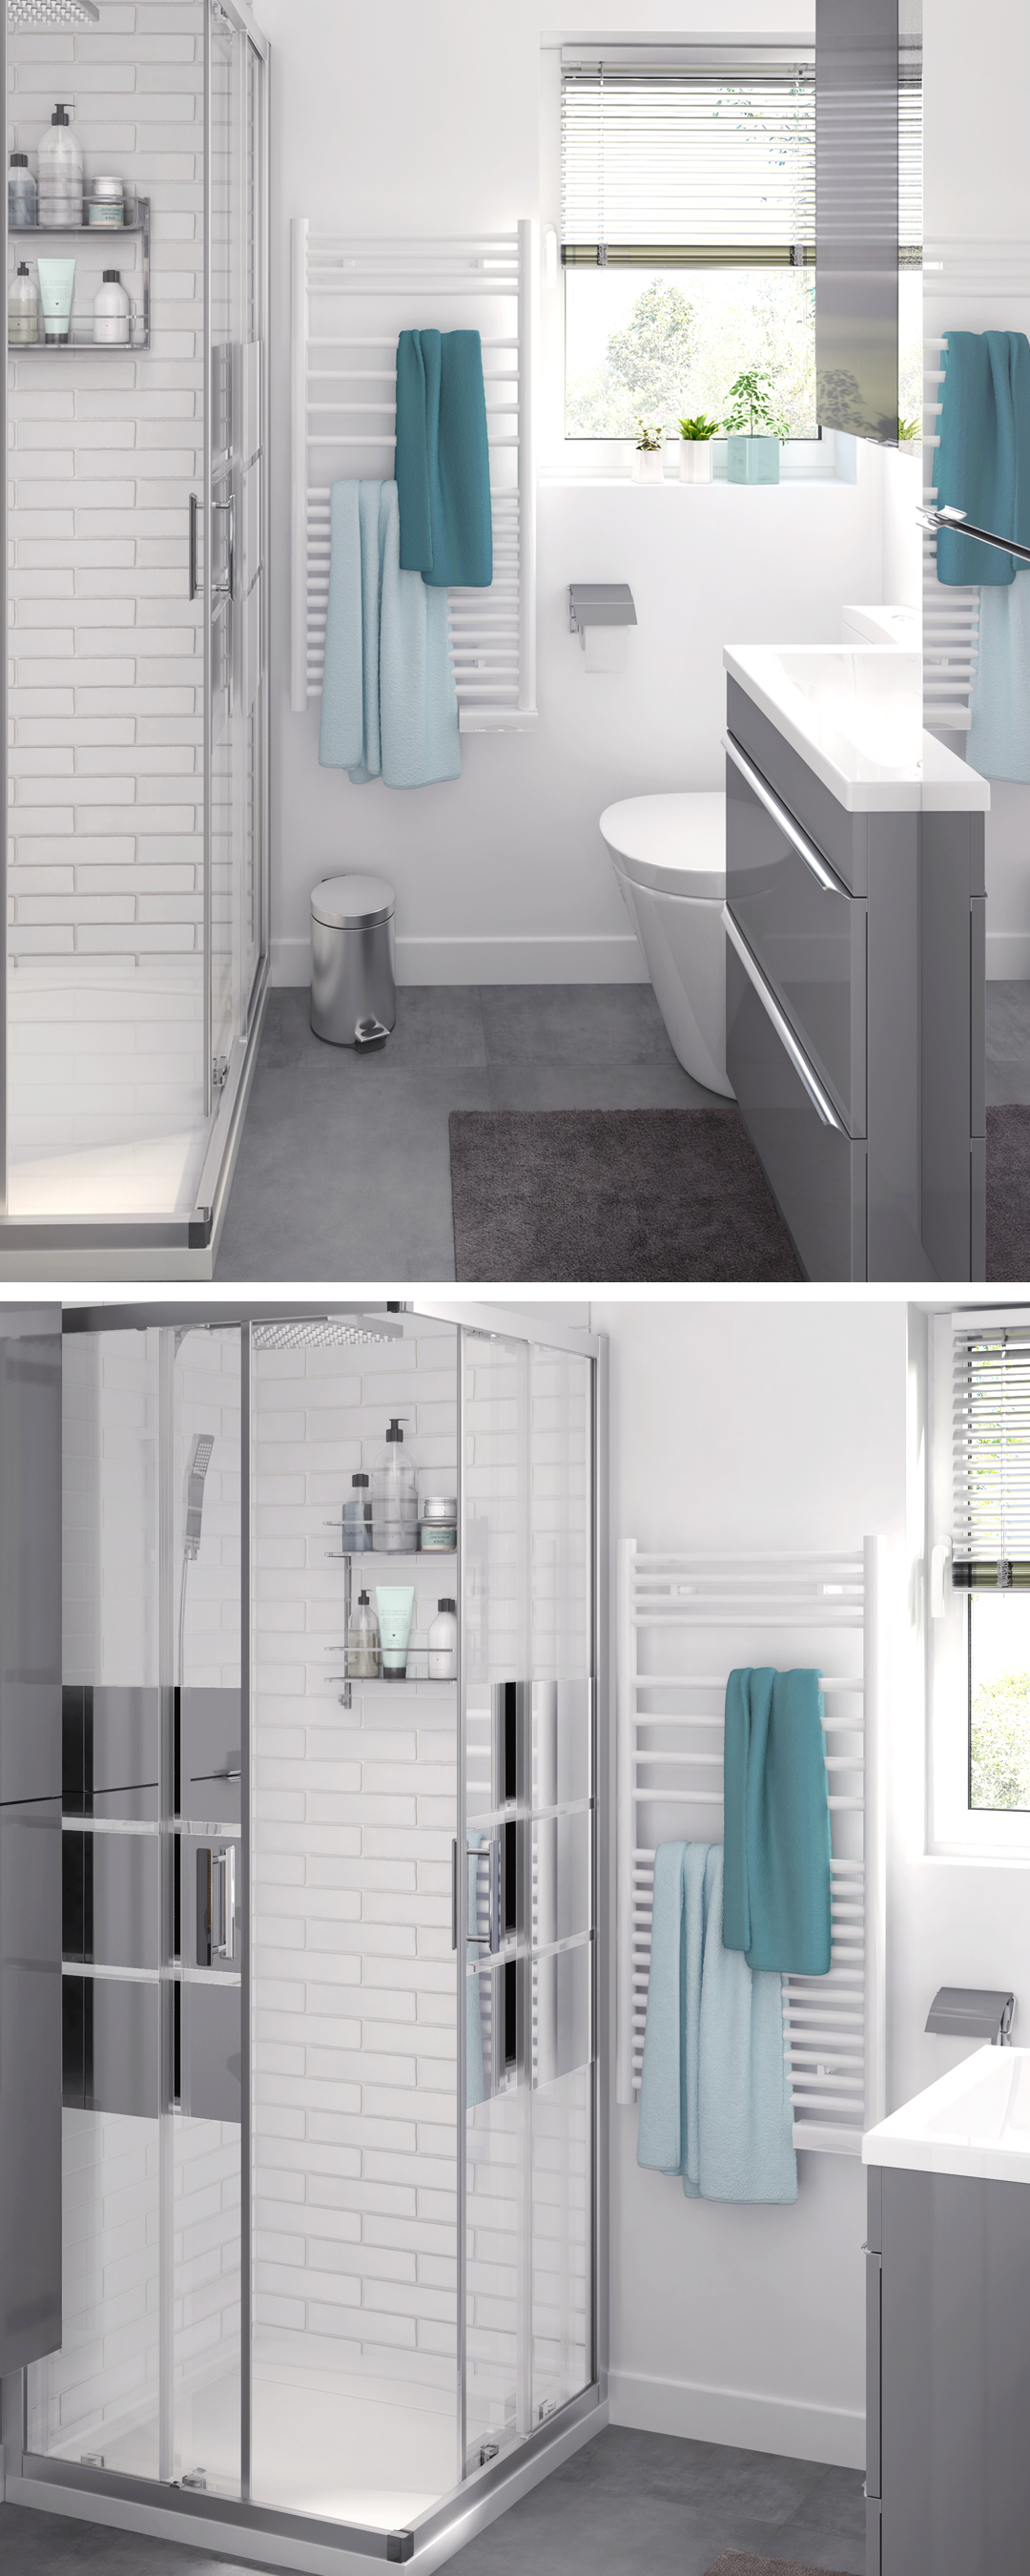 Use Our Online Bathroom Planning Tool To Realistically Visualise What Products Will Look Like In Your Fitted Bathroom Furniture Fitted Bathroom Small Bathroom